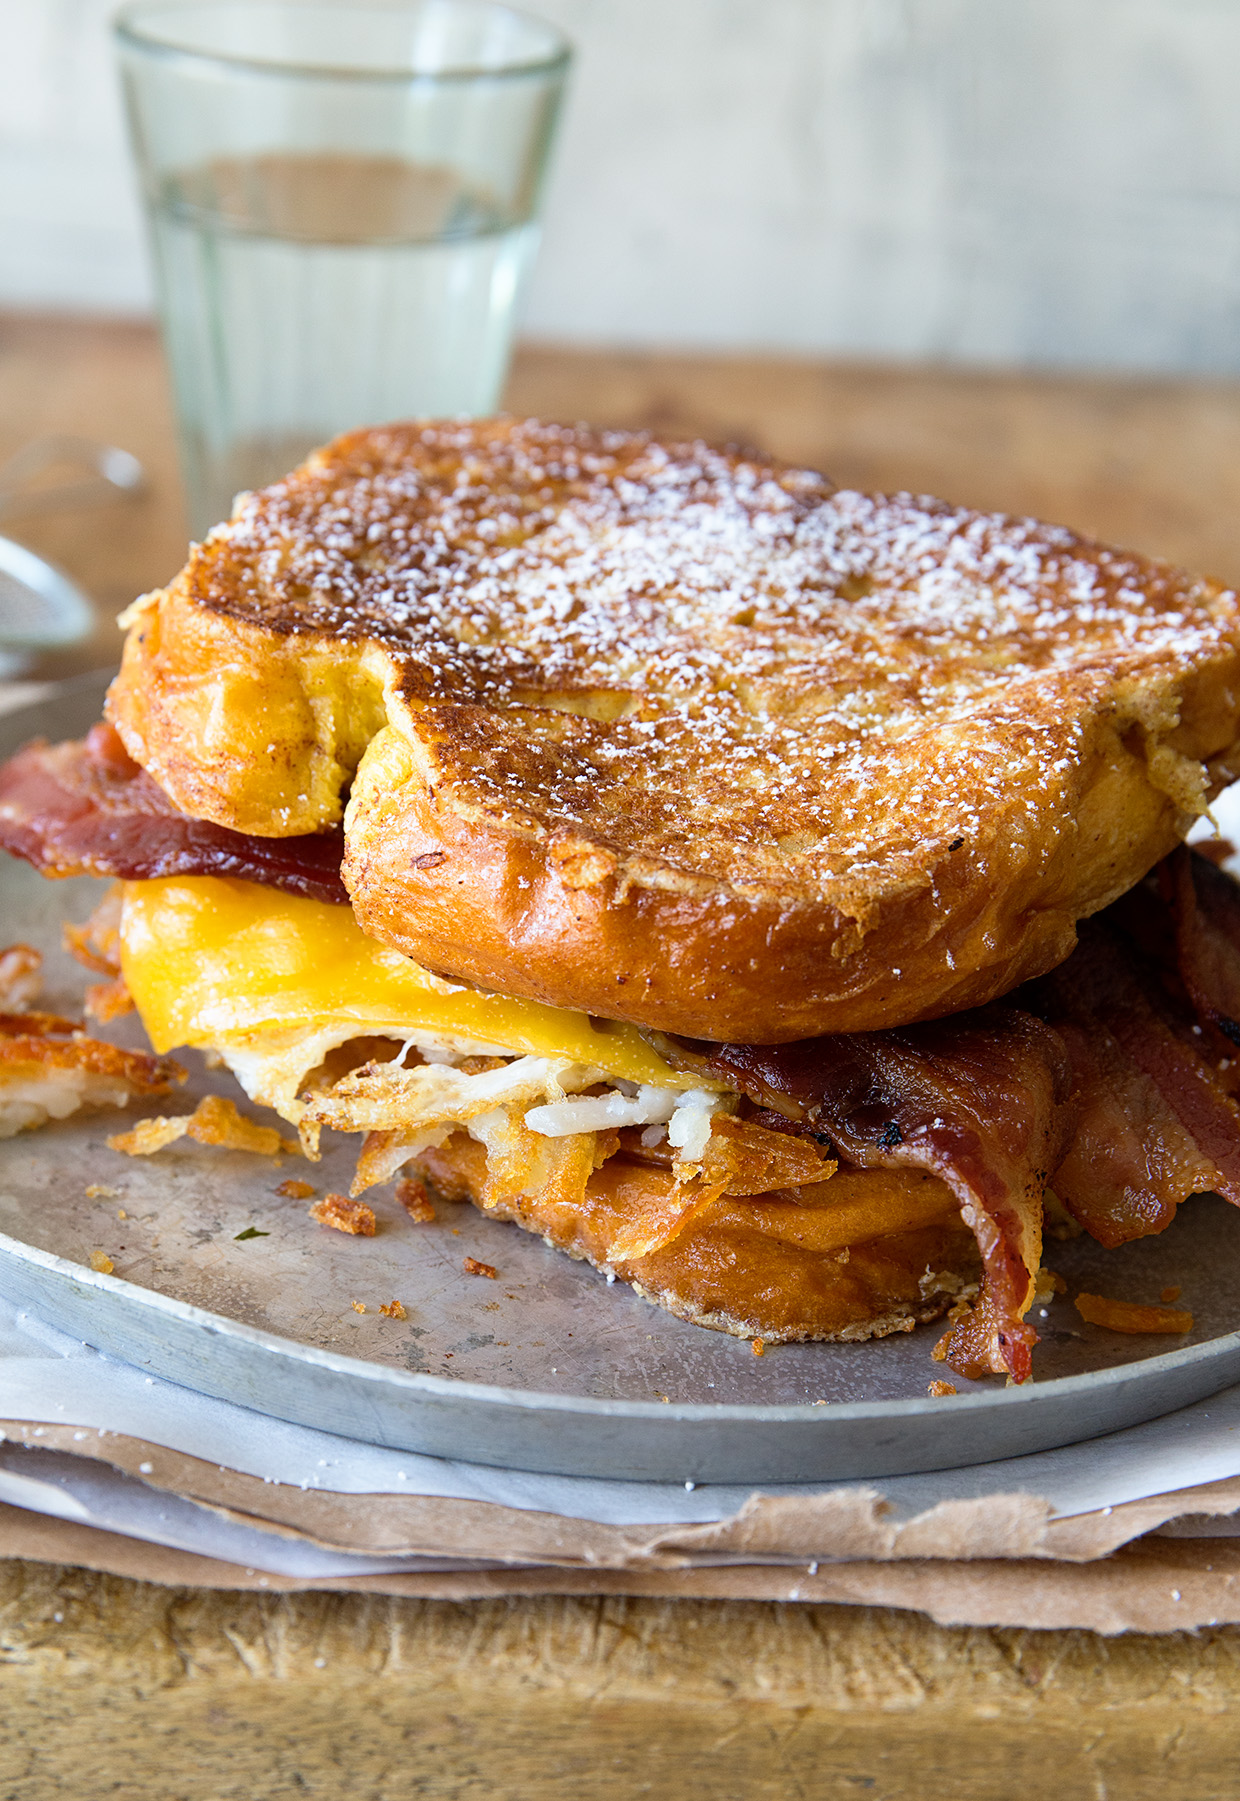 The Big Breakfast Sandwich